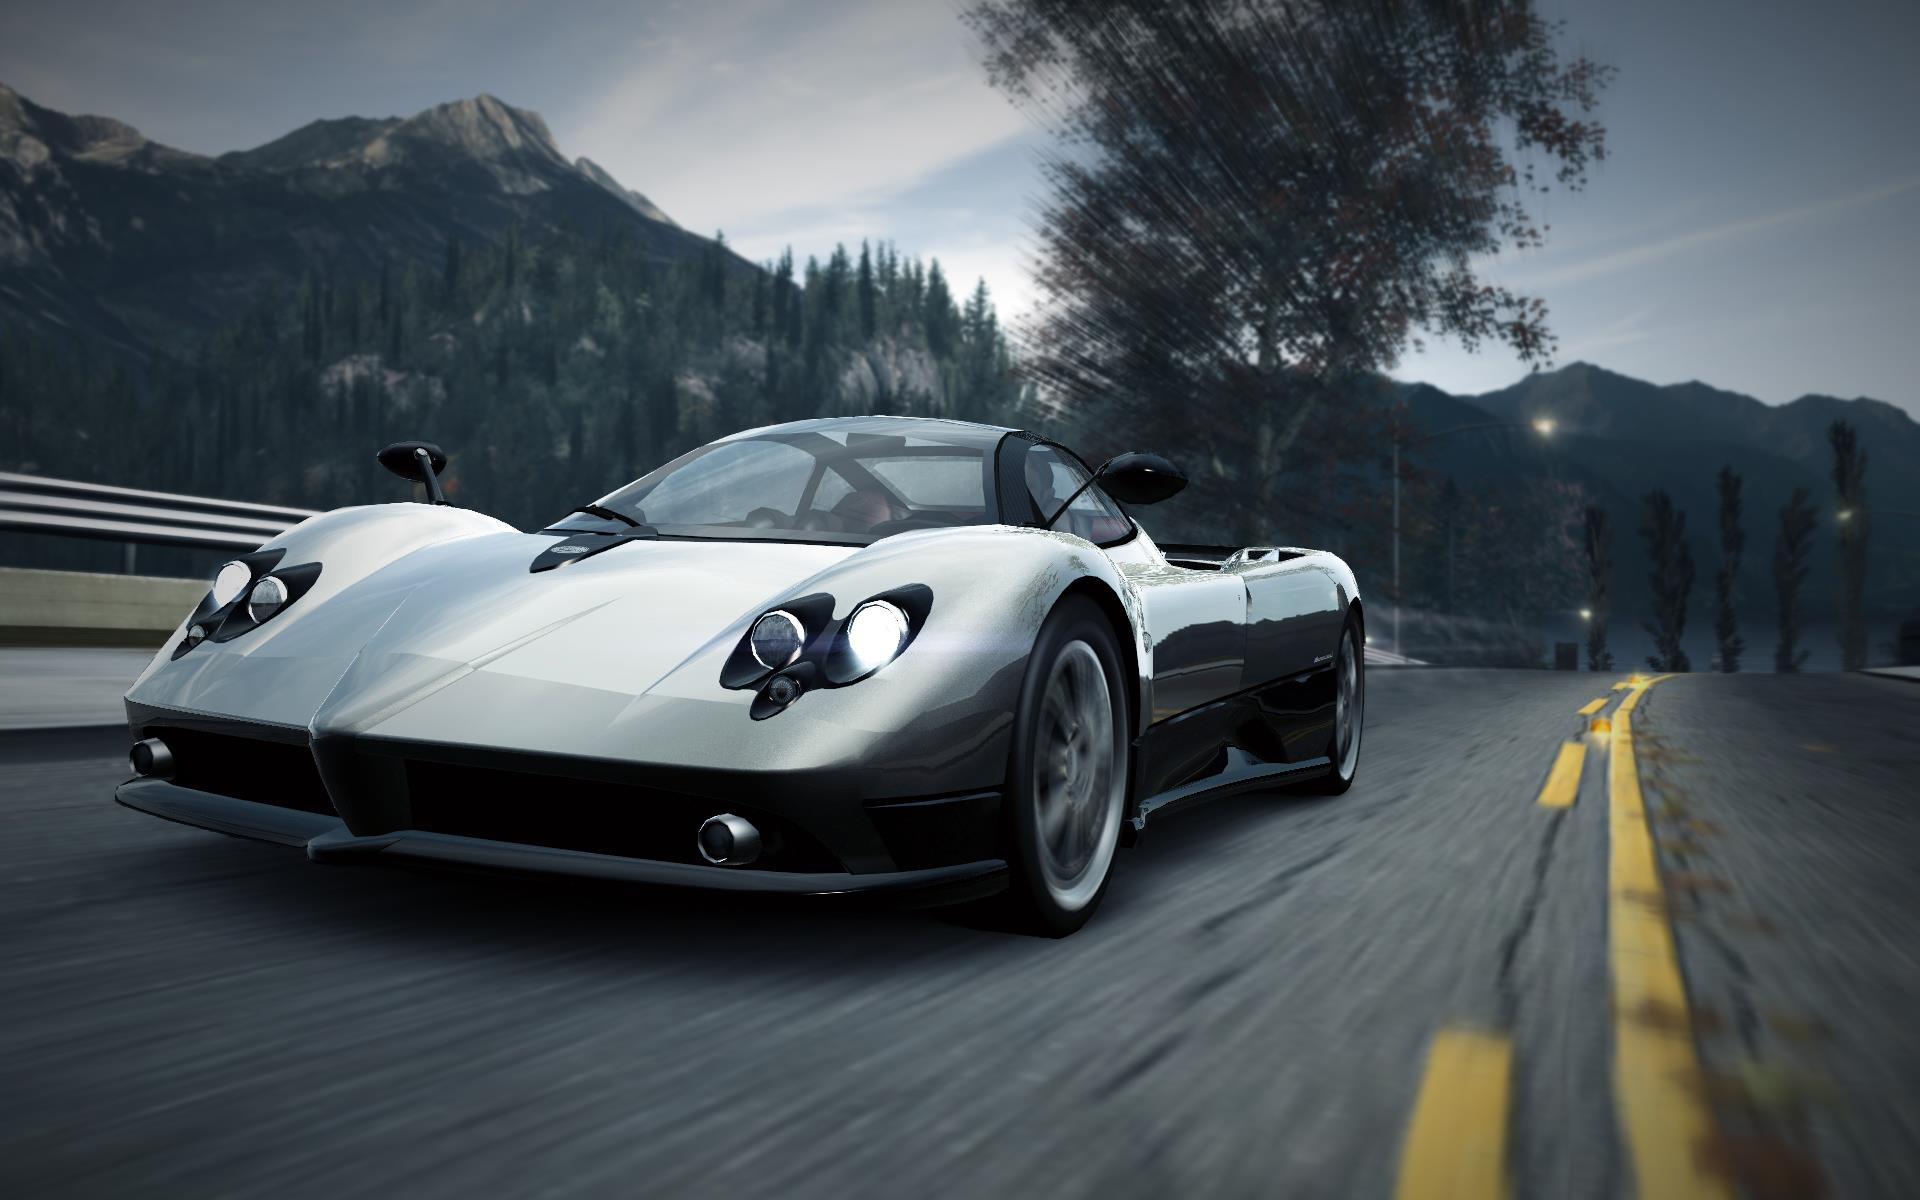 pagani zonda f coup nfs world wiki fandom powered by wikia. Black Bedroom Furniture Sets. Home Design Ideas